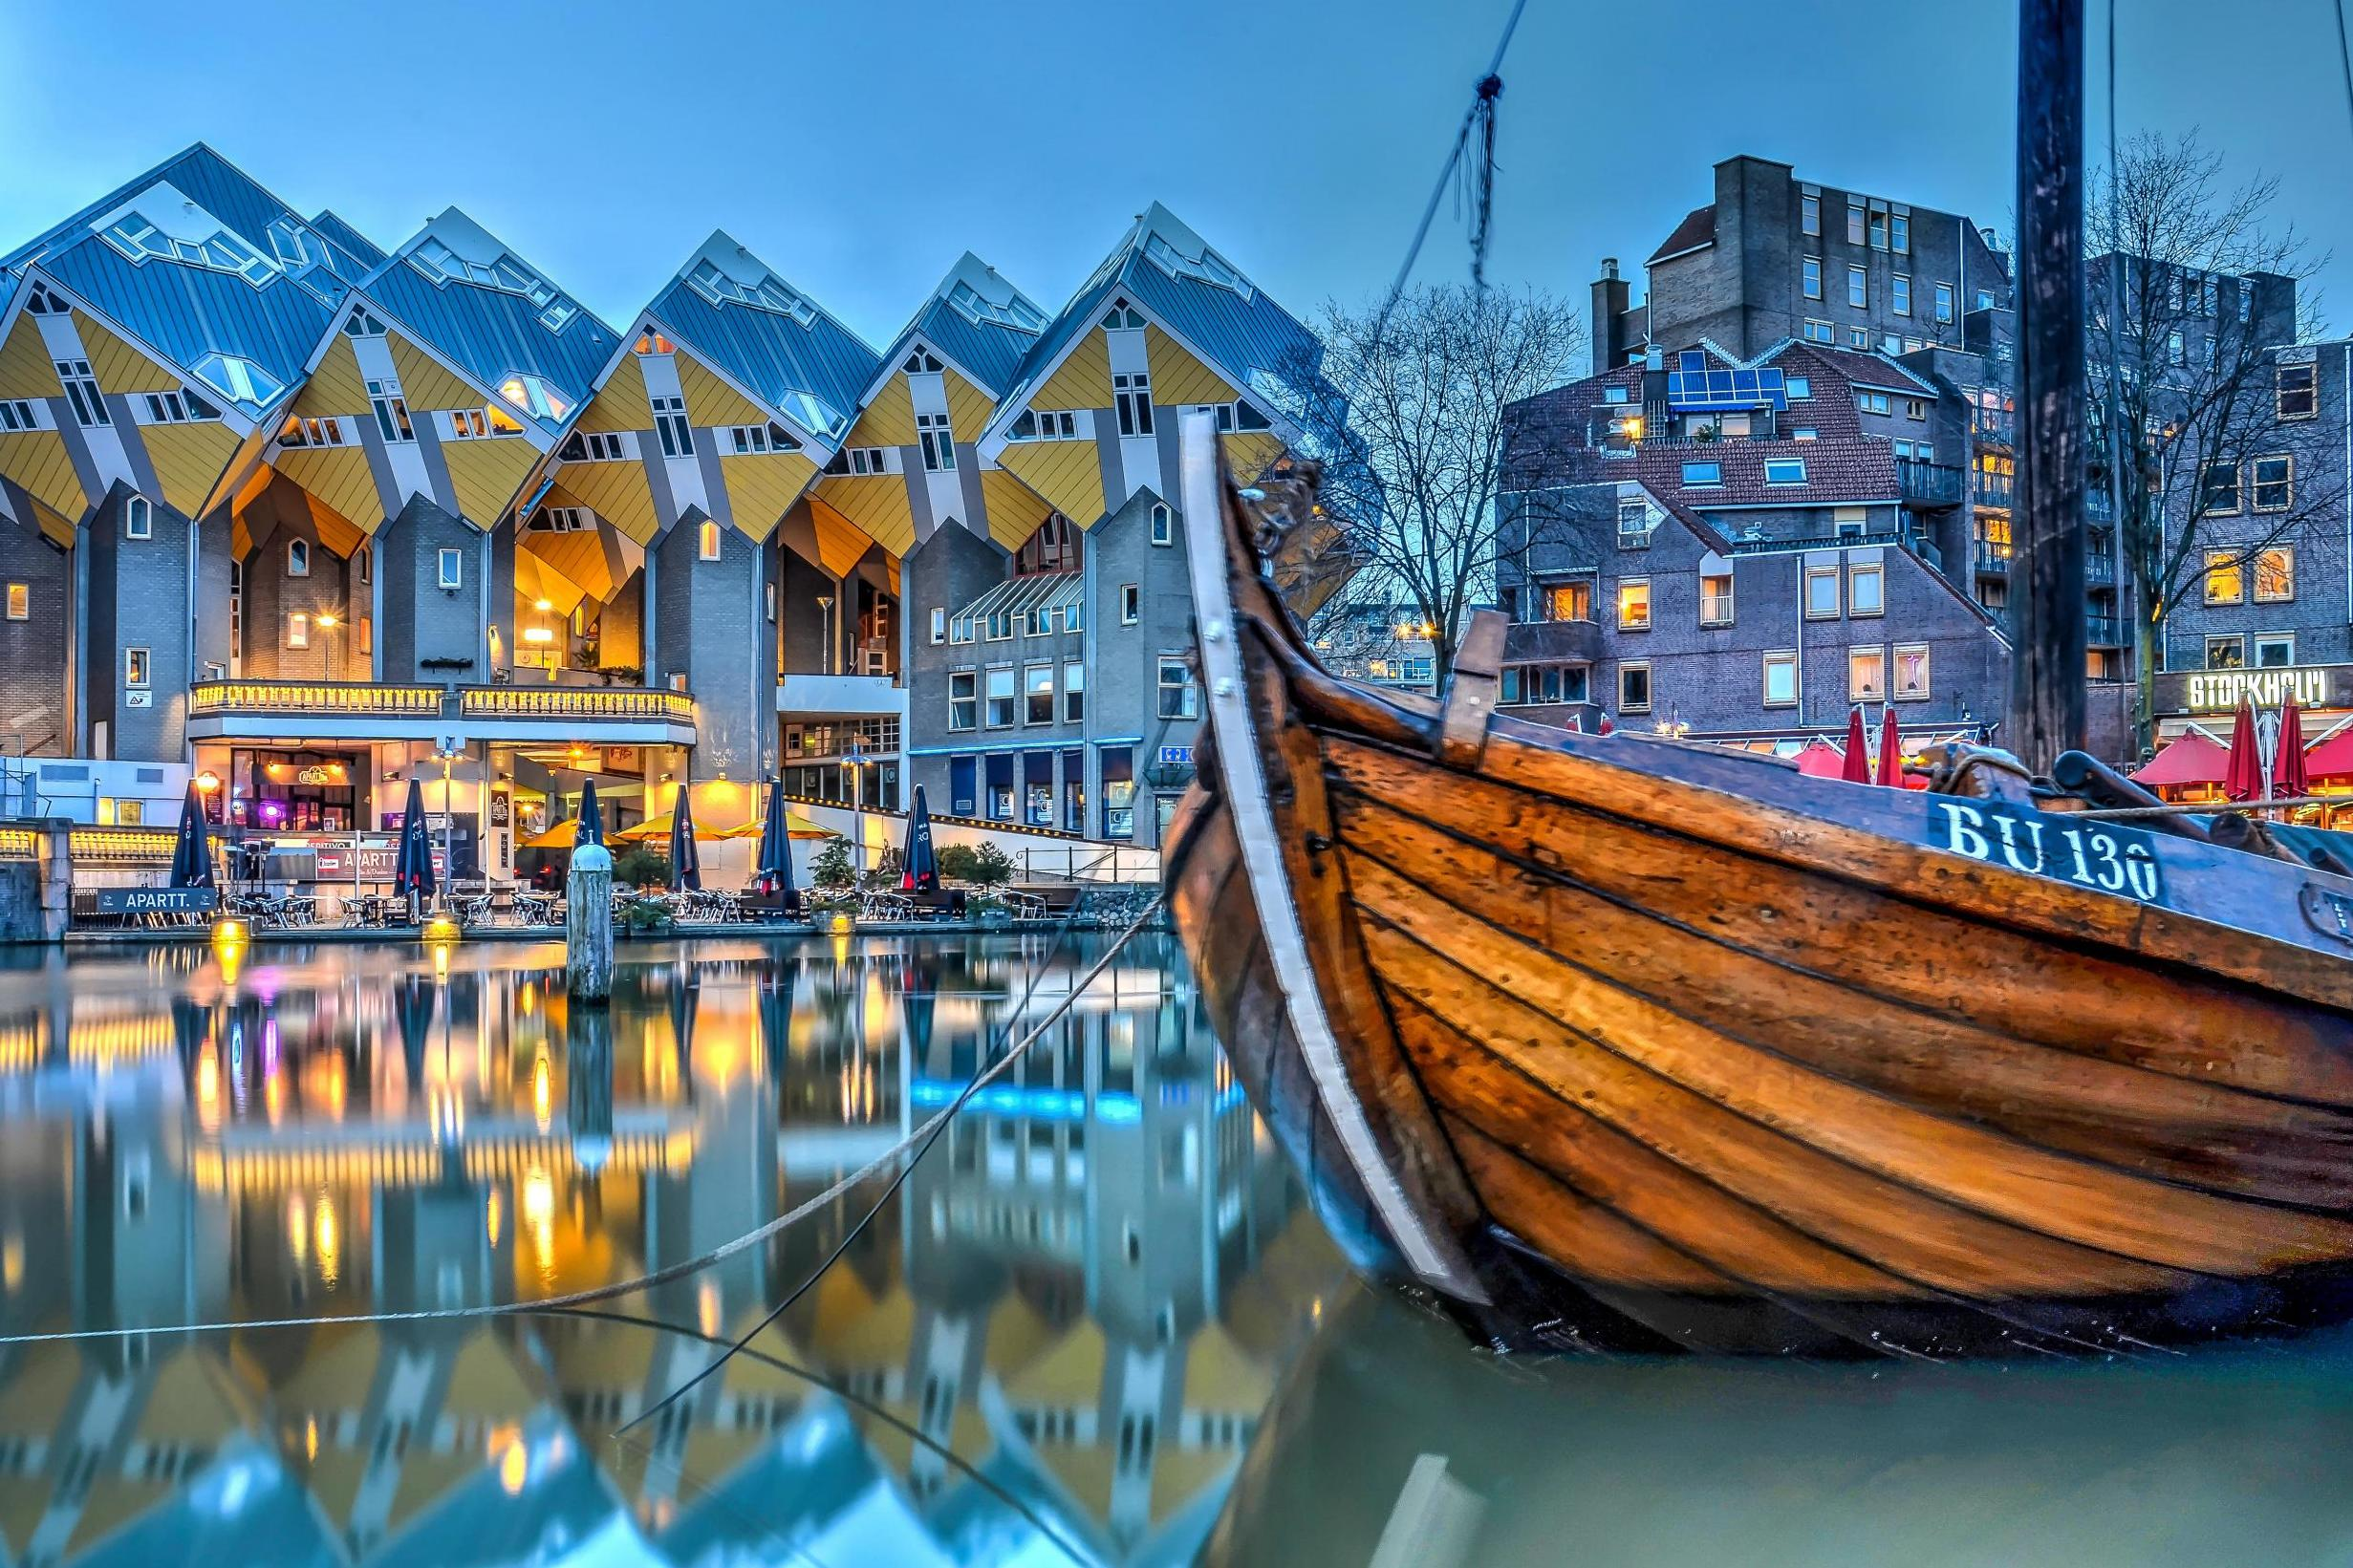 Rotterdam travel guide: 10 things to do in the Dutch city